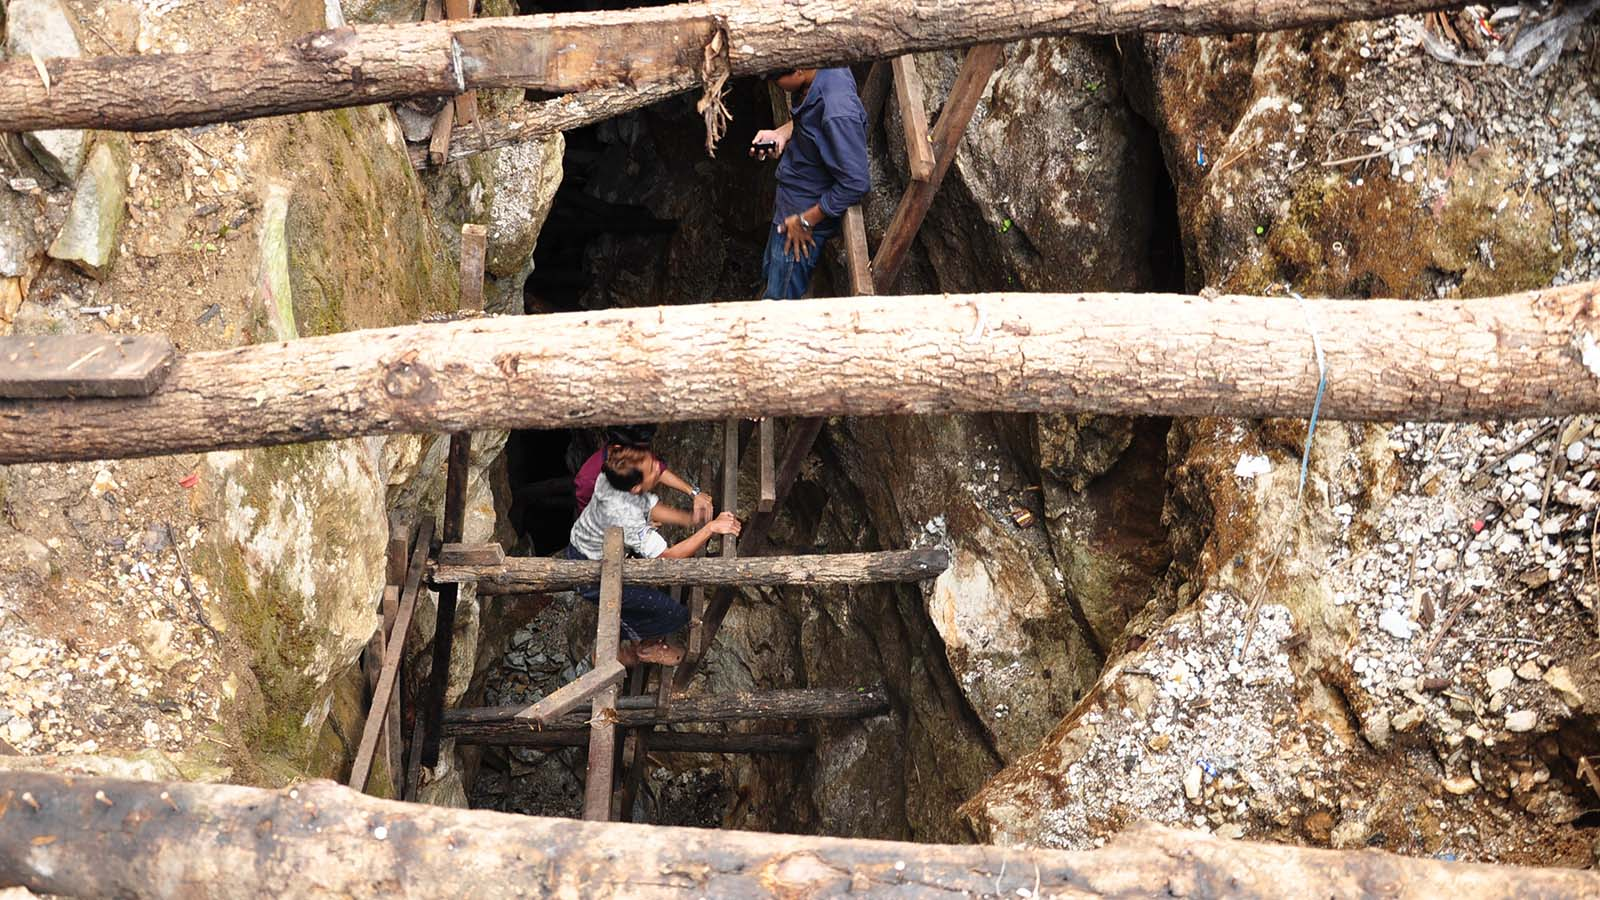 Mandalay Region's Department of Mines granted to permit artisanal and small-scale mining business in order to reduce illegal mining and create jobs for locals